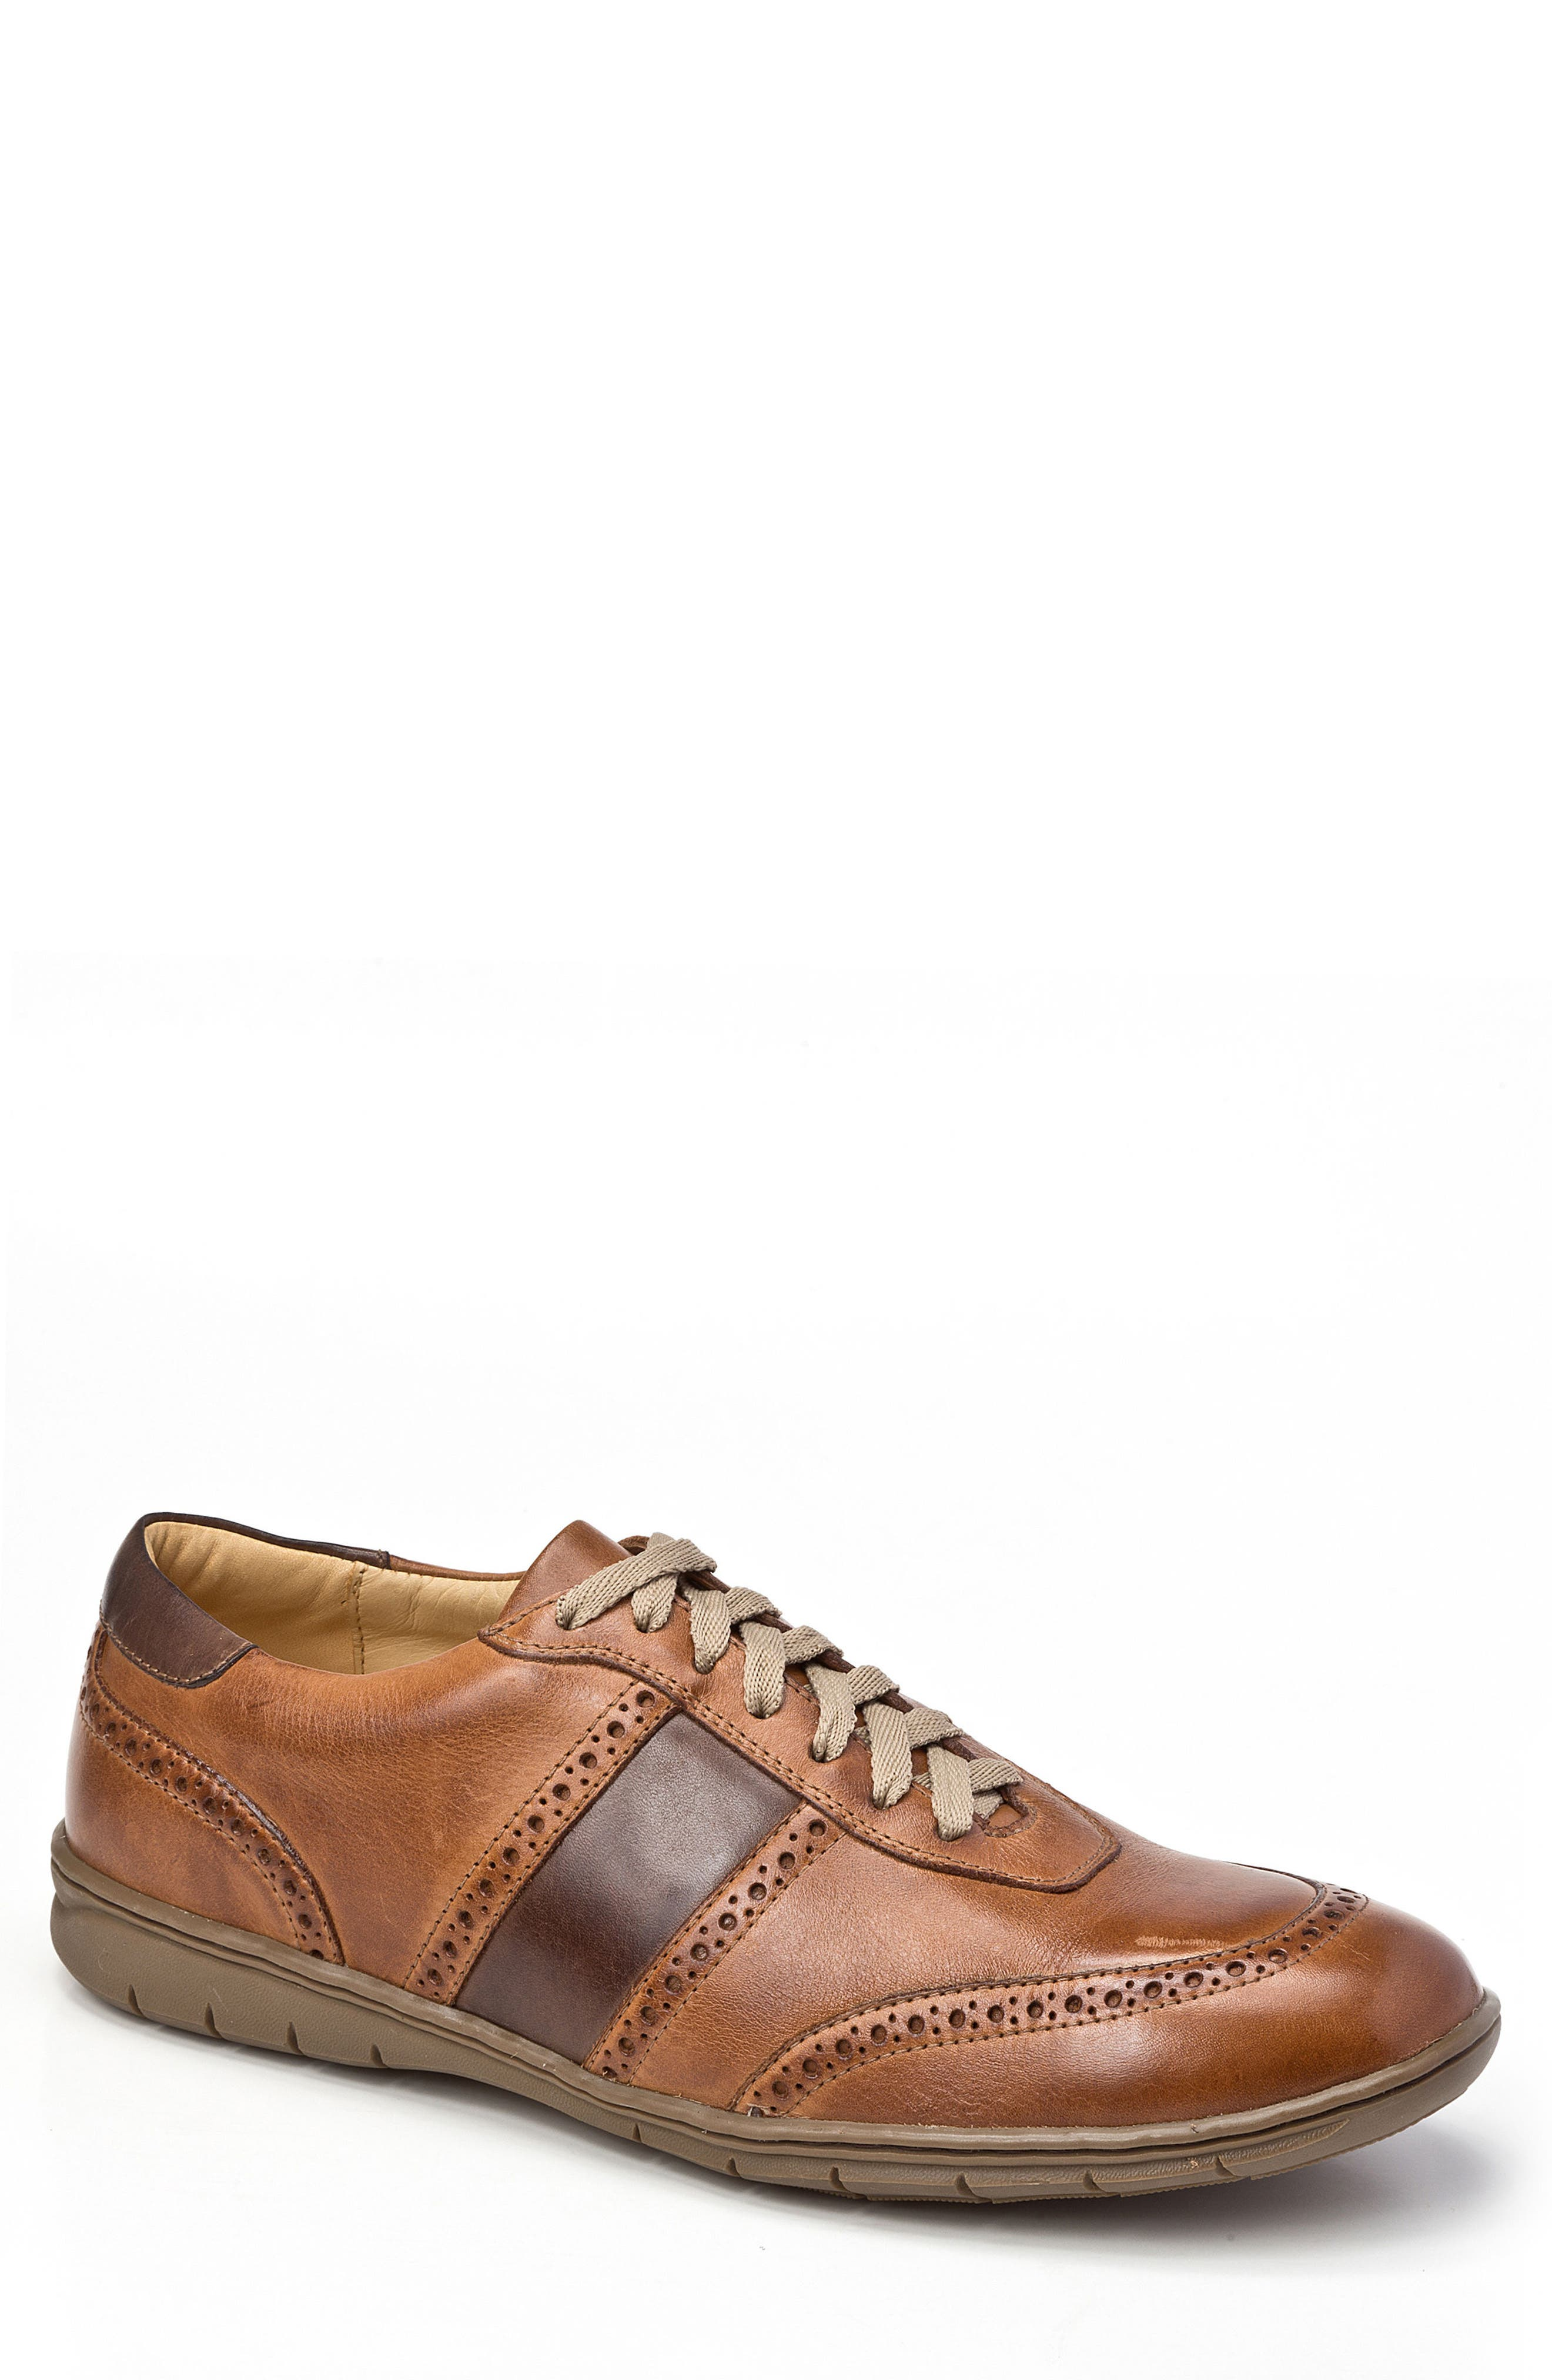 Norris Sneaker,                             Main thumbnail 1, color,                             Tan Leather